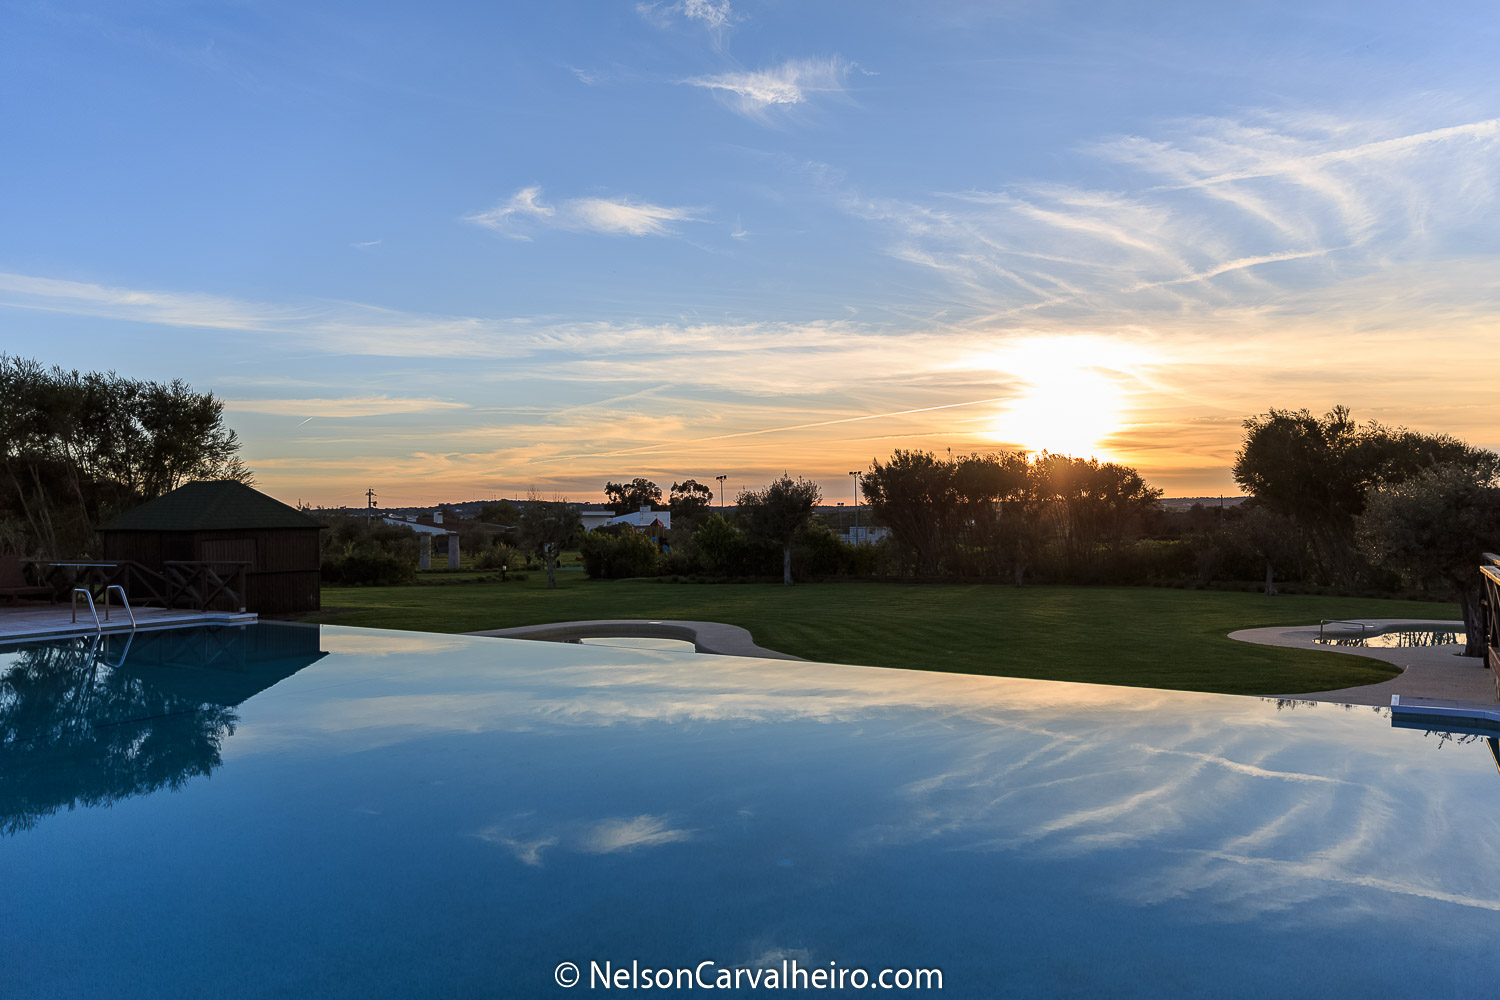 Alentejo Wine Travel Guide - Convento do Espinheiro - Pool